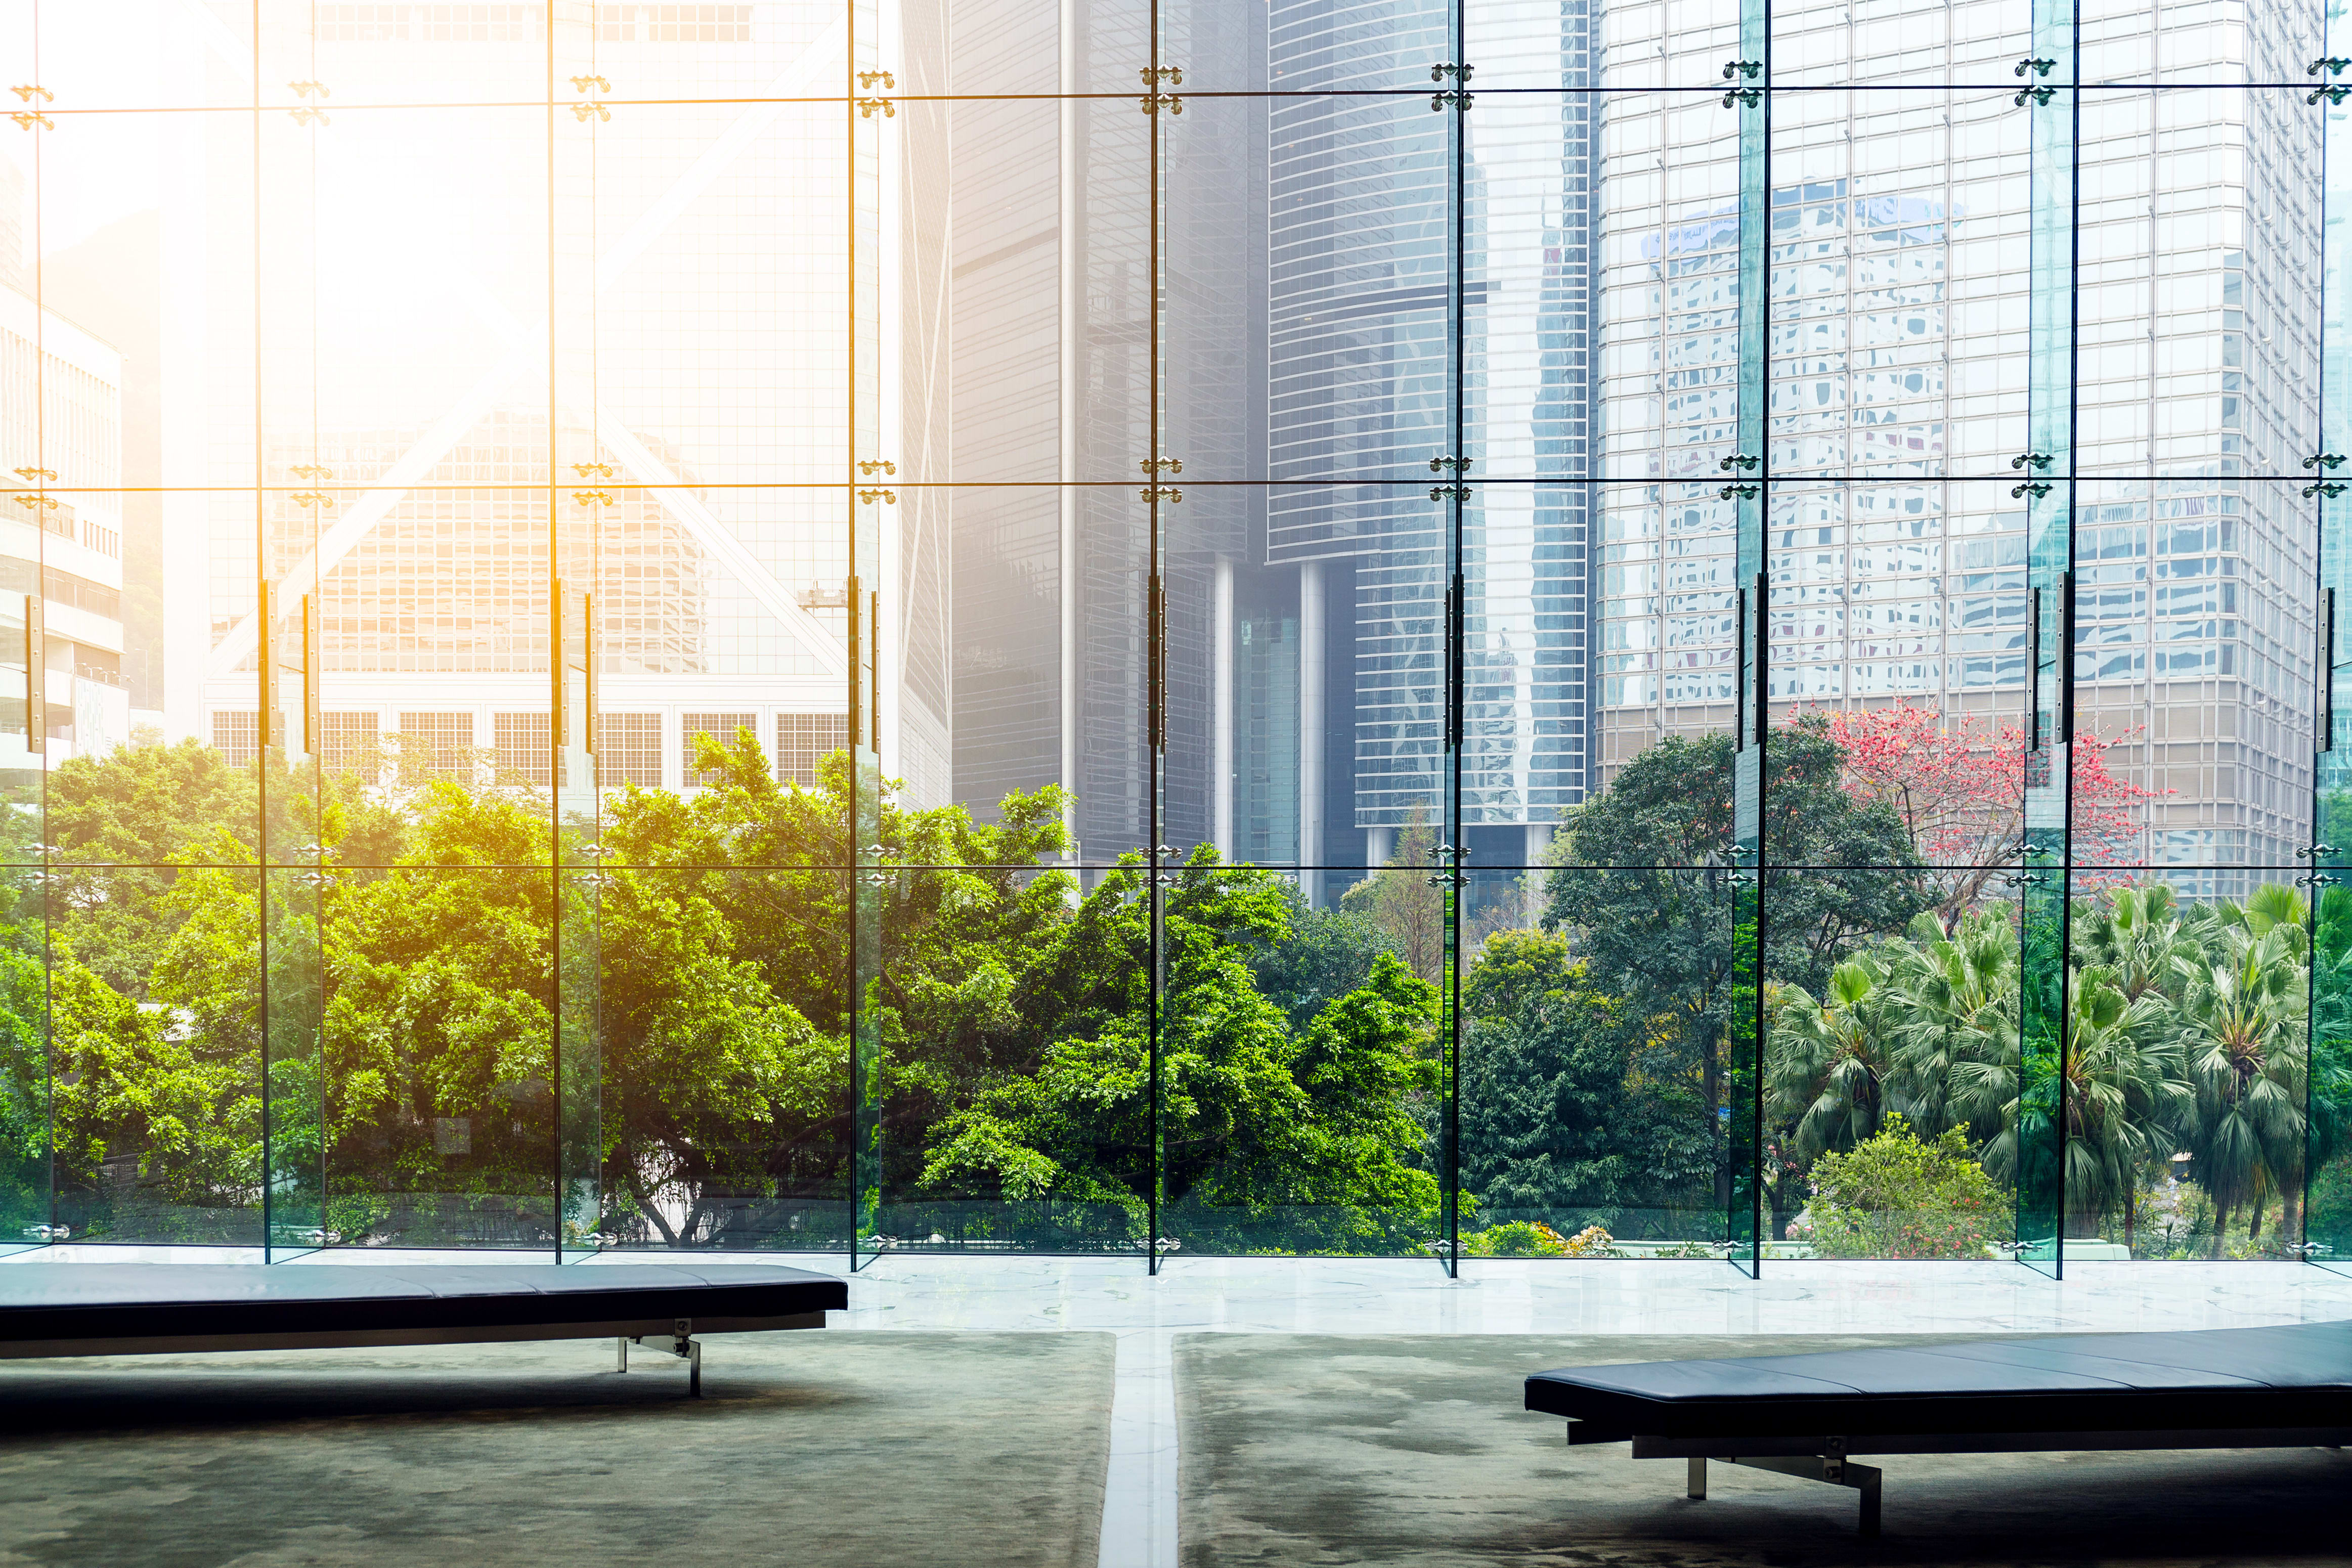 Really nice building with floor to ceiling glass windows